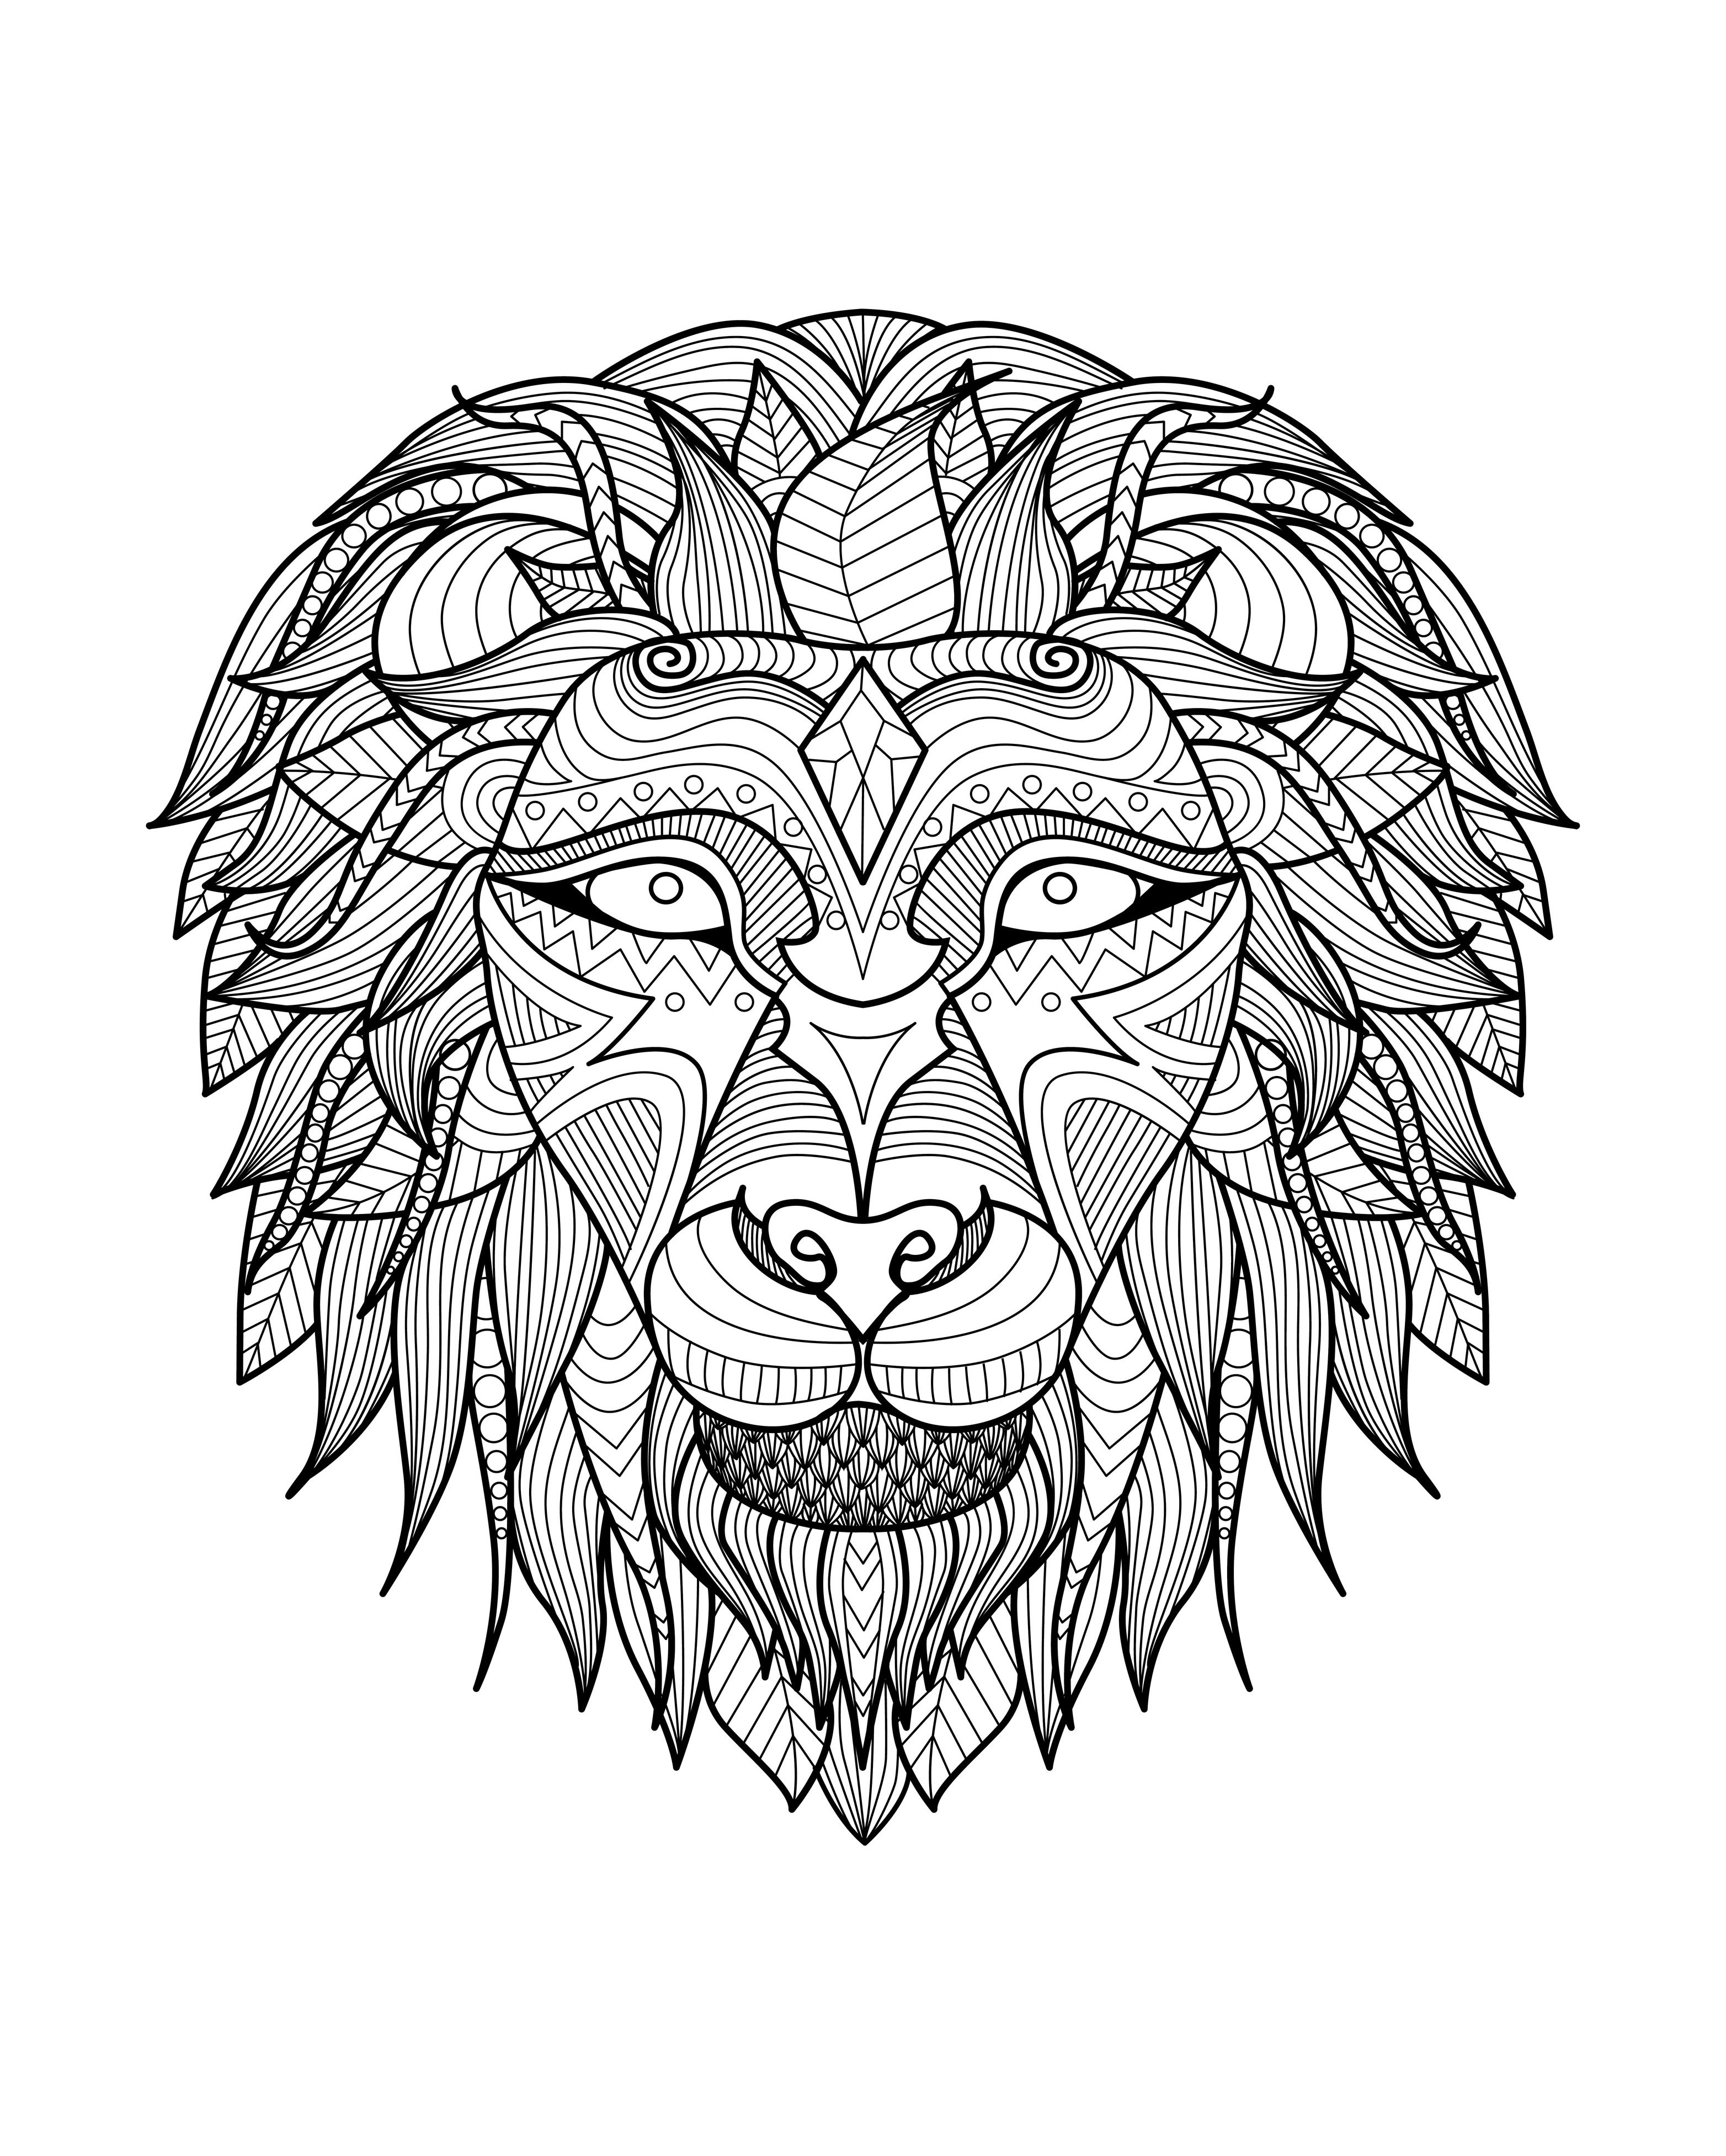 Africa lion head 2 | Africa - Coloring pages for adults | JustColor